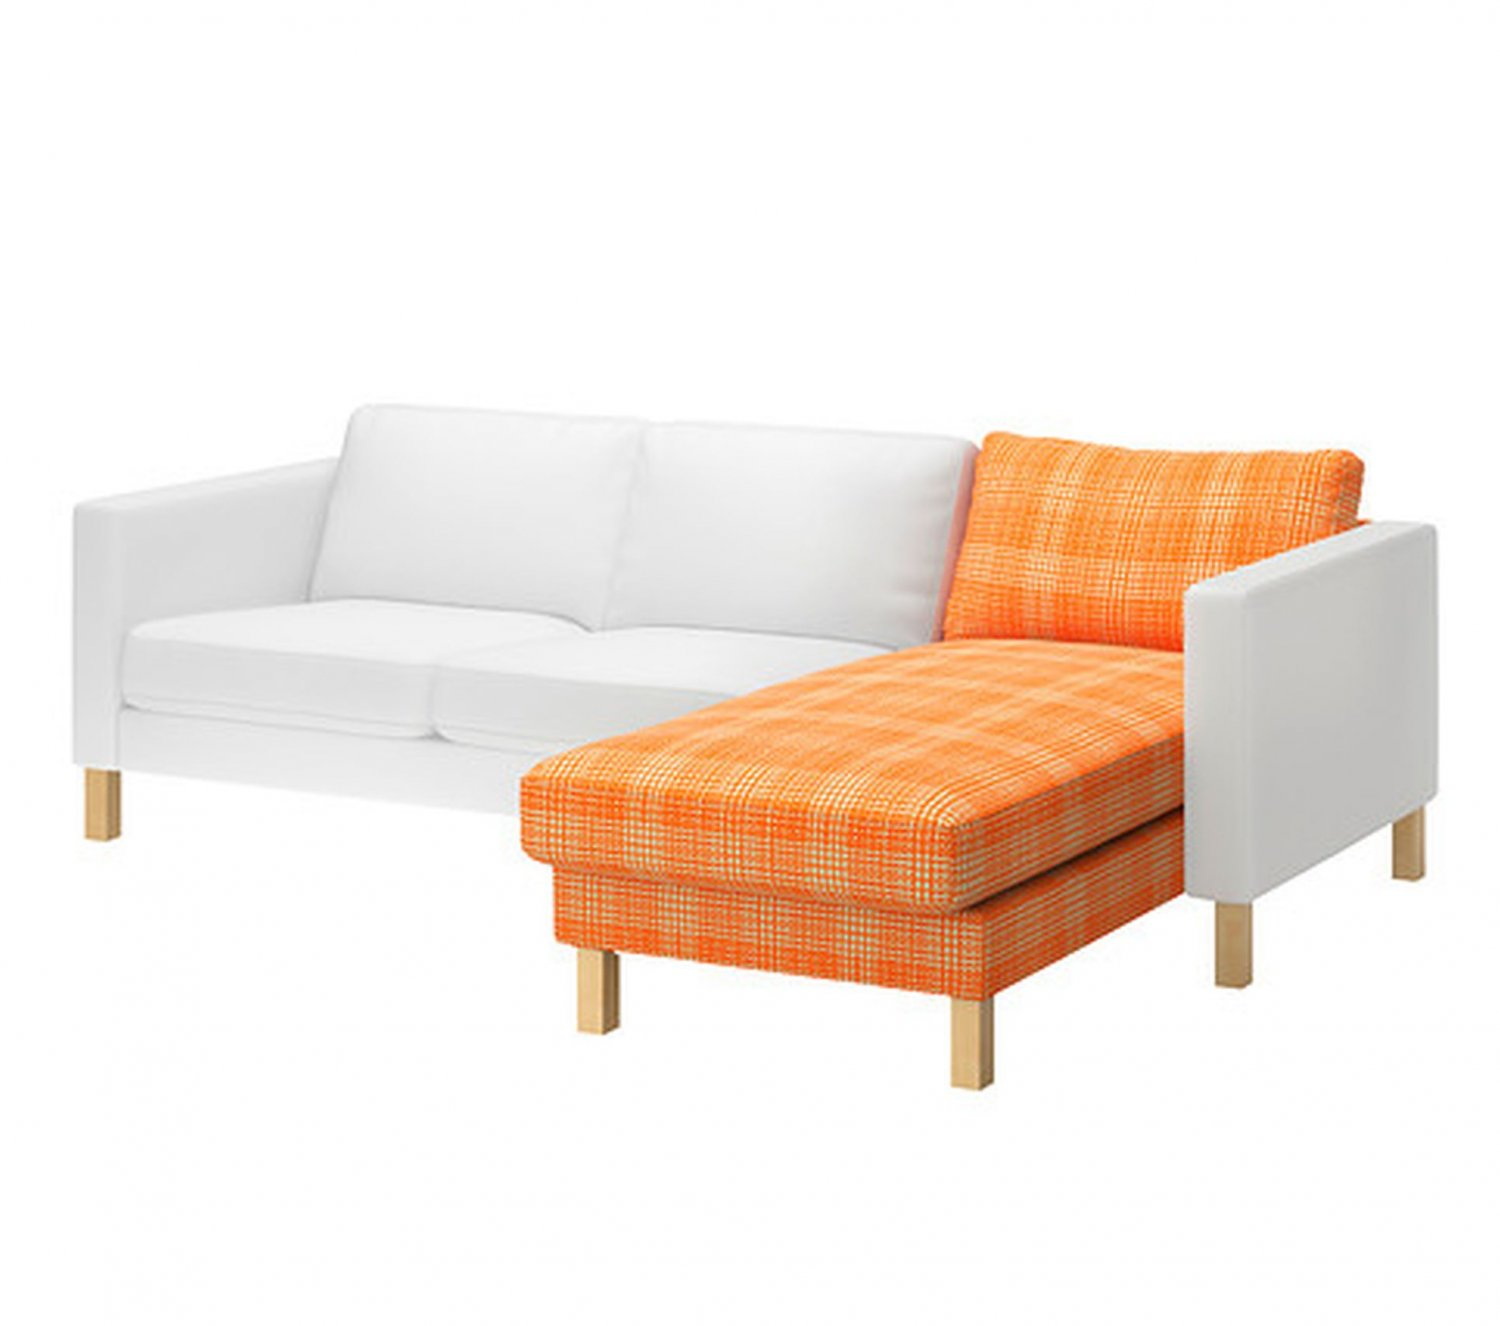 Chaise Orange Ikea Ikea Karlstad Add On Chaise Longue Slipcover Cover Husie